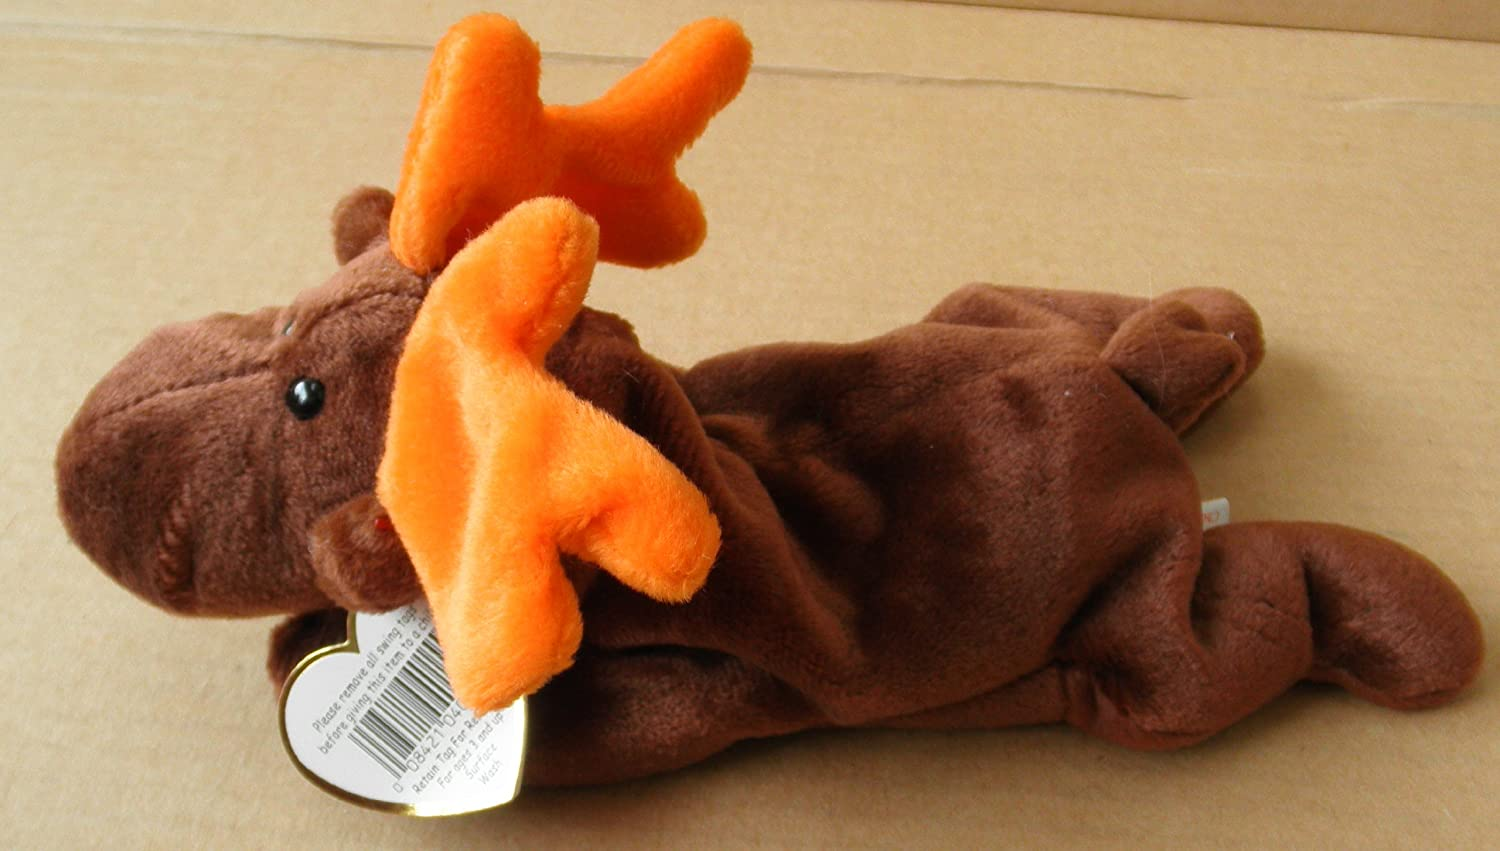 Amazon.com: TY Beanie Babies Chocolate the Moose Stuffed Animal ...